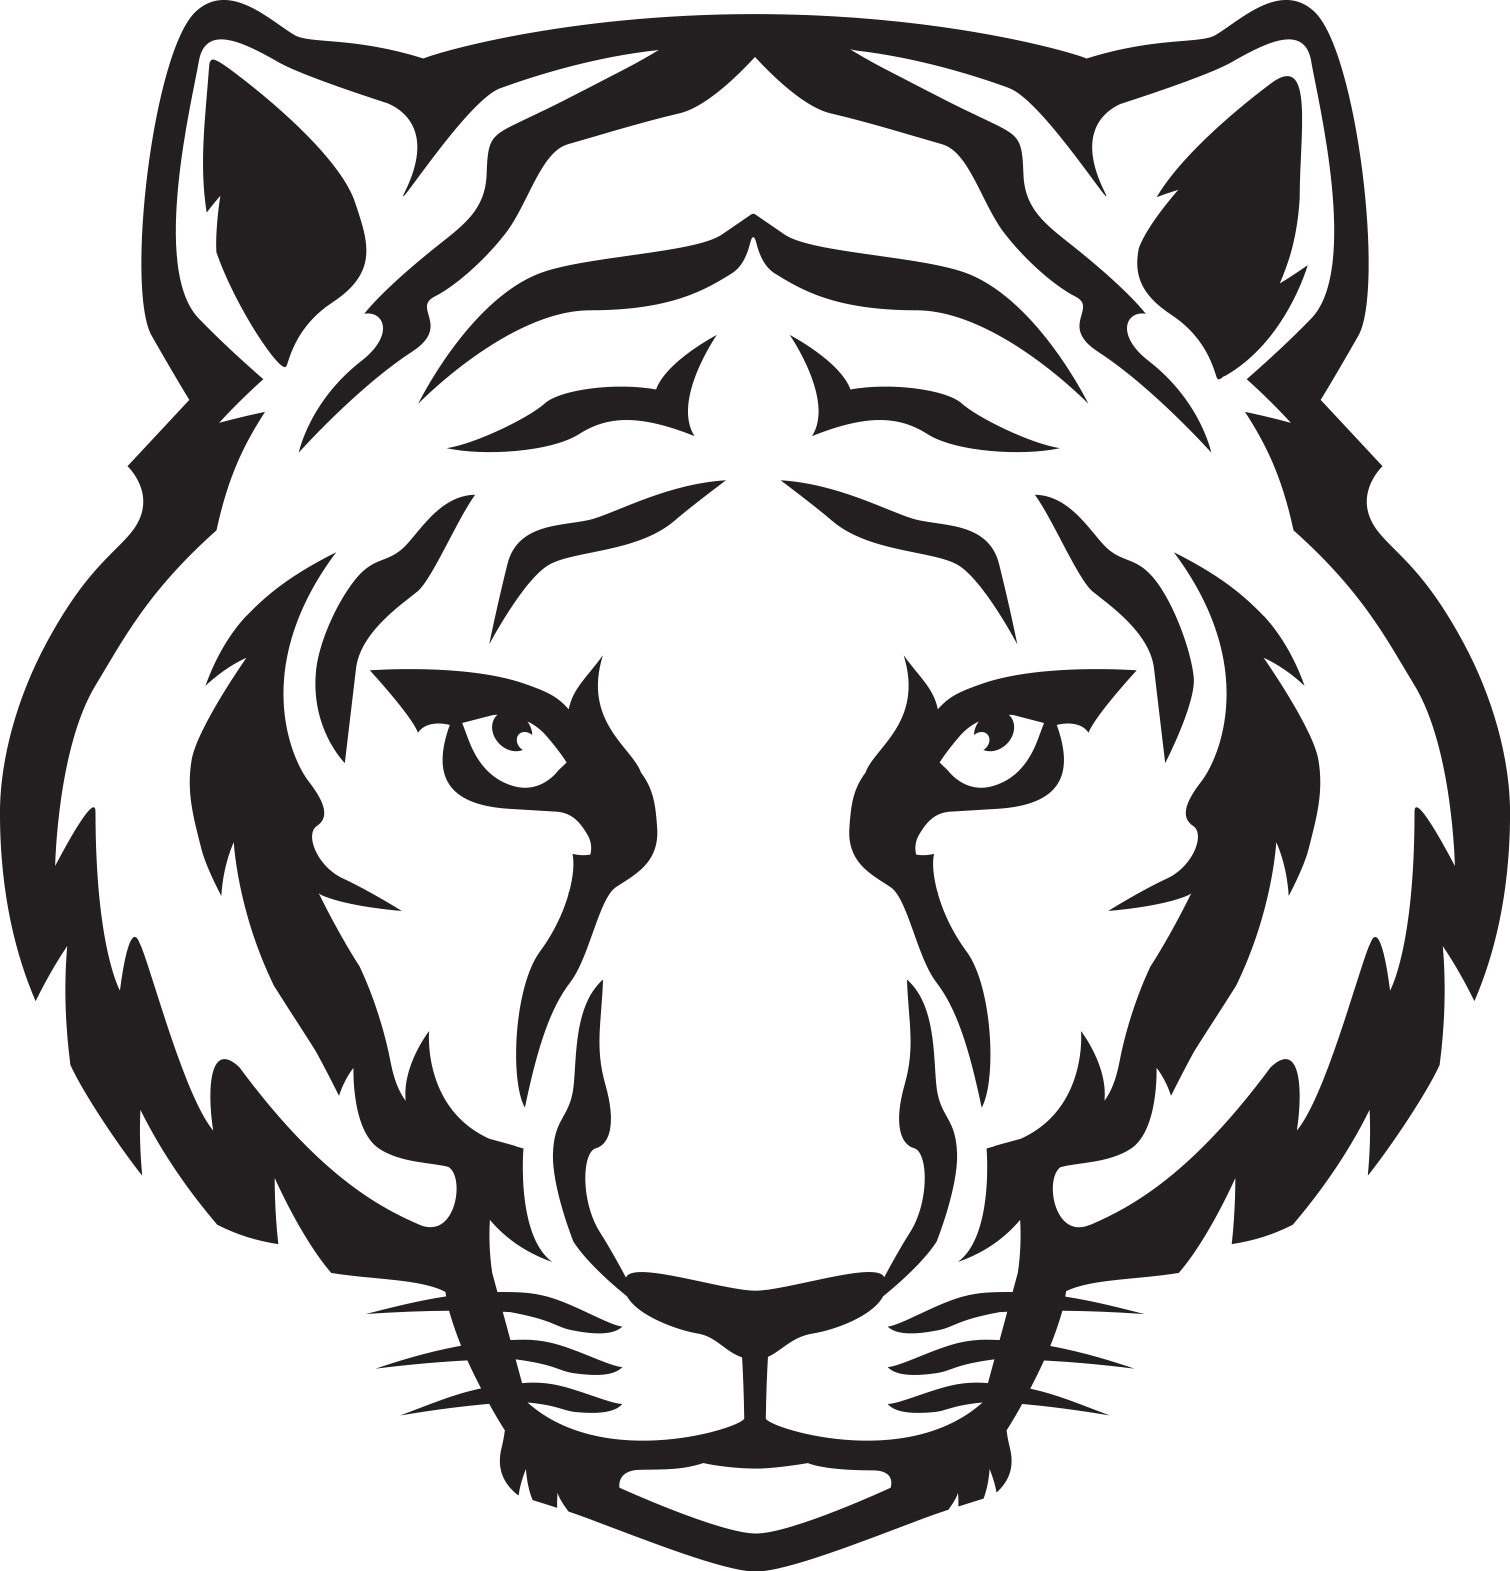 Eyes black and white tiger eyes clipart black and white.